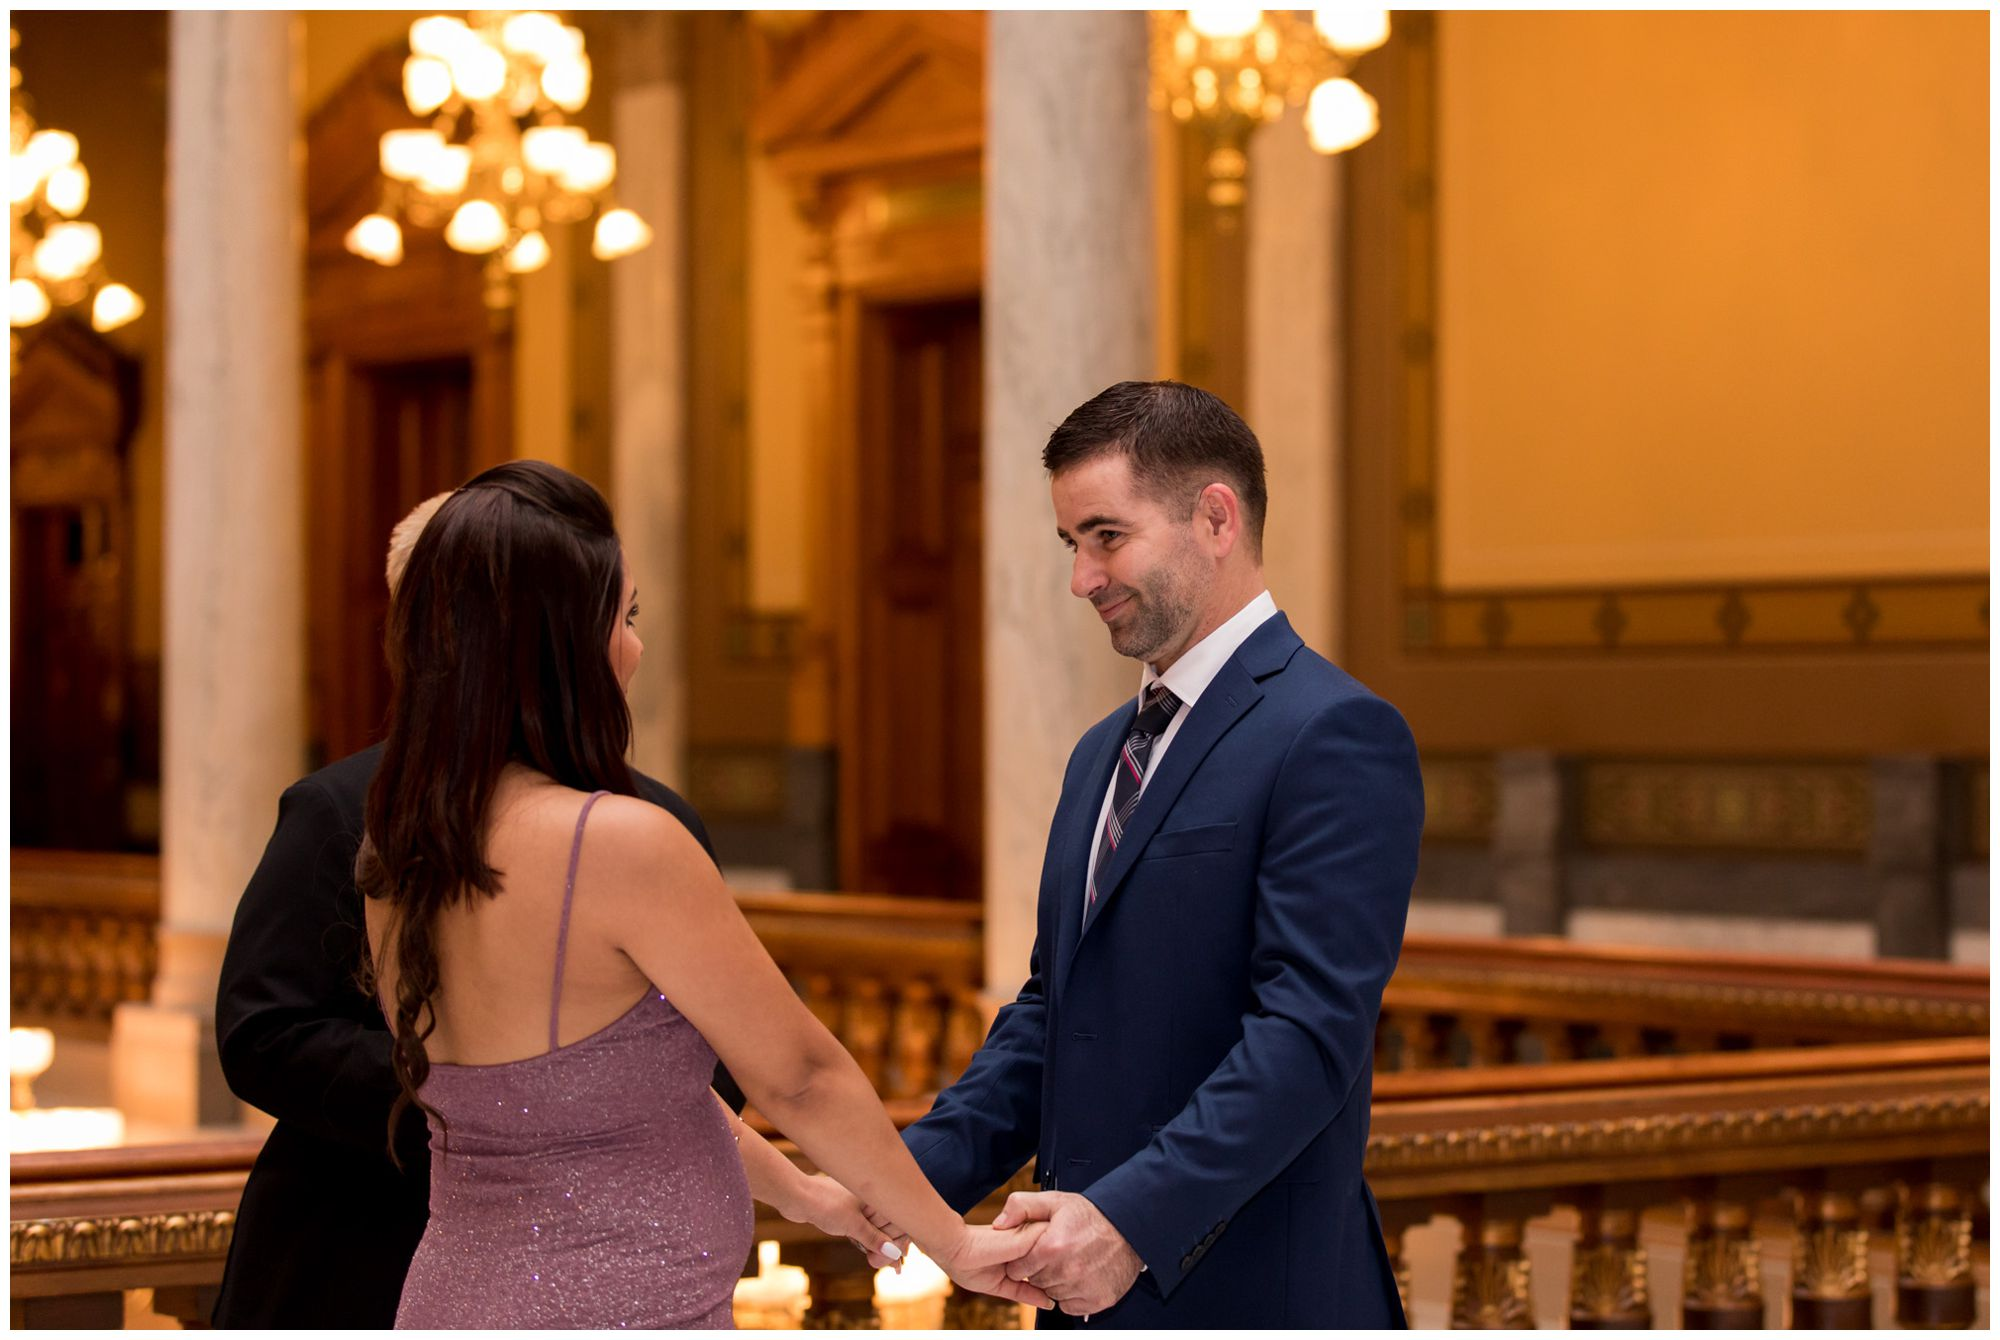 intimate elopement ceremony at Indiana Statehouse in downtown Indianapolis